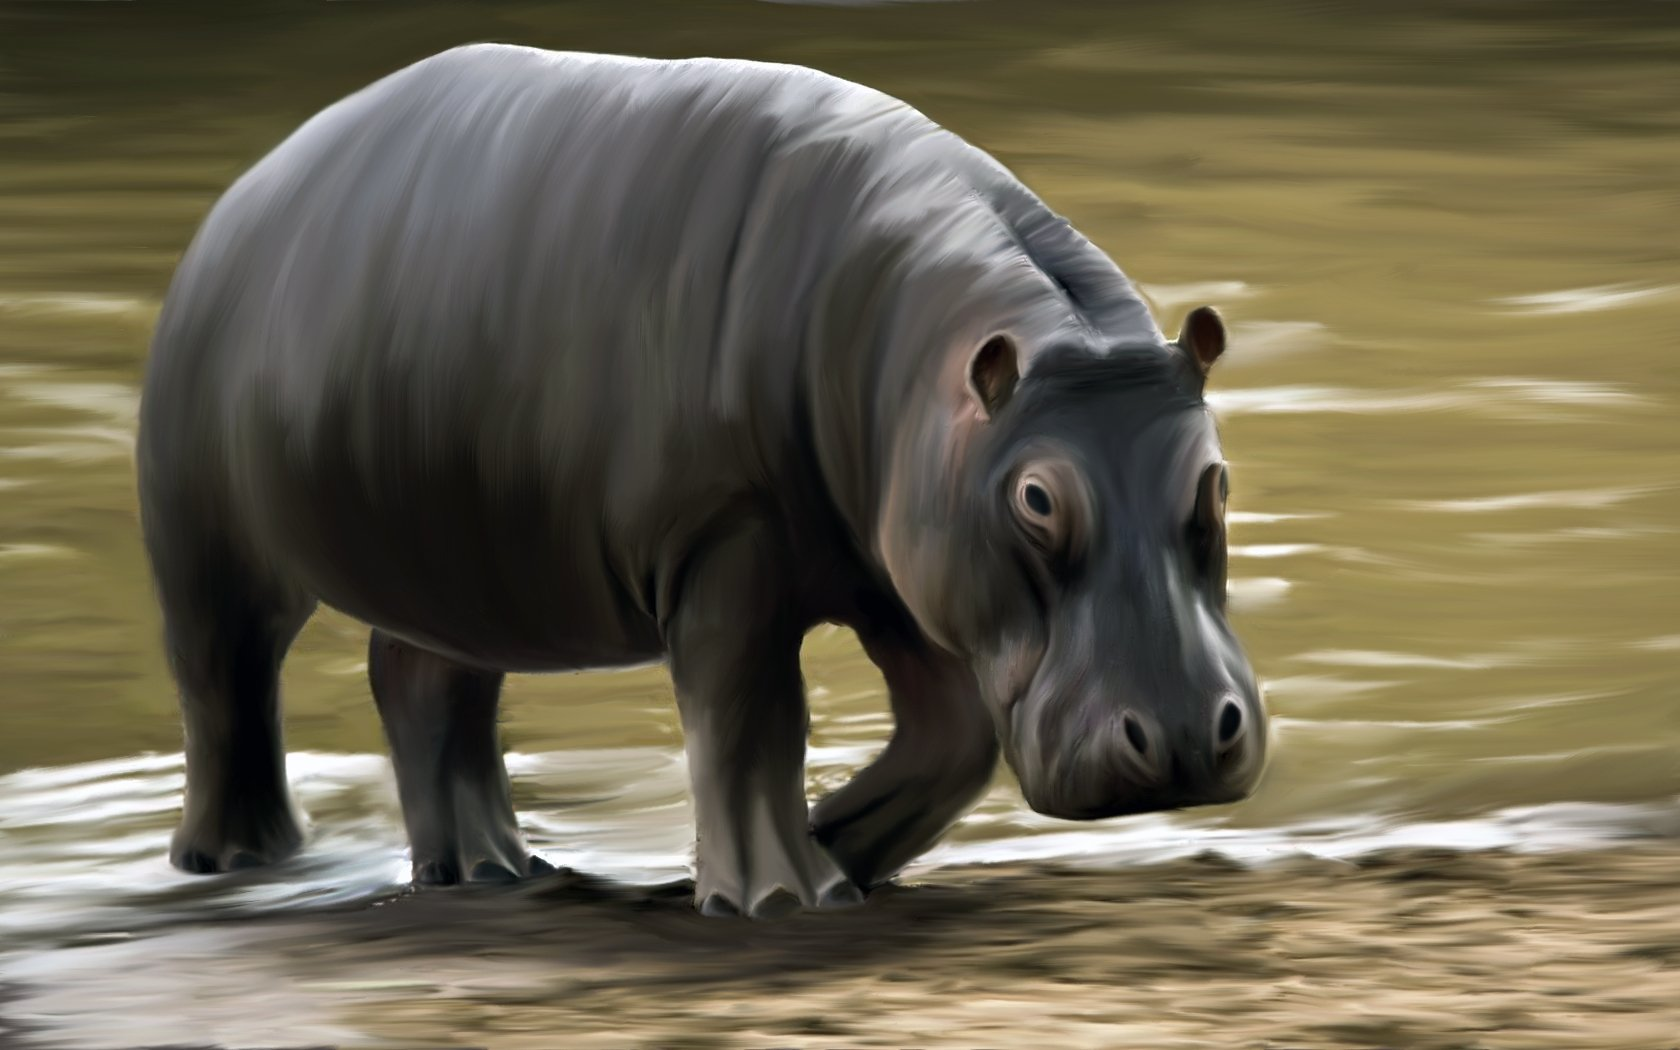 animal hippo wallpaper 1600x1200 - photo #30